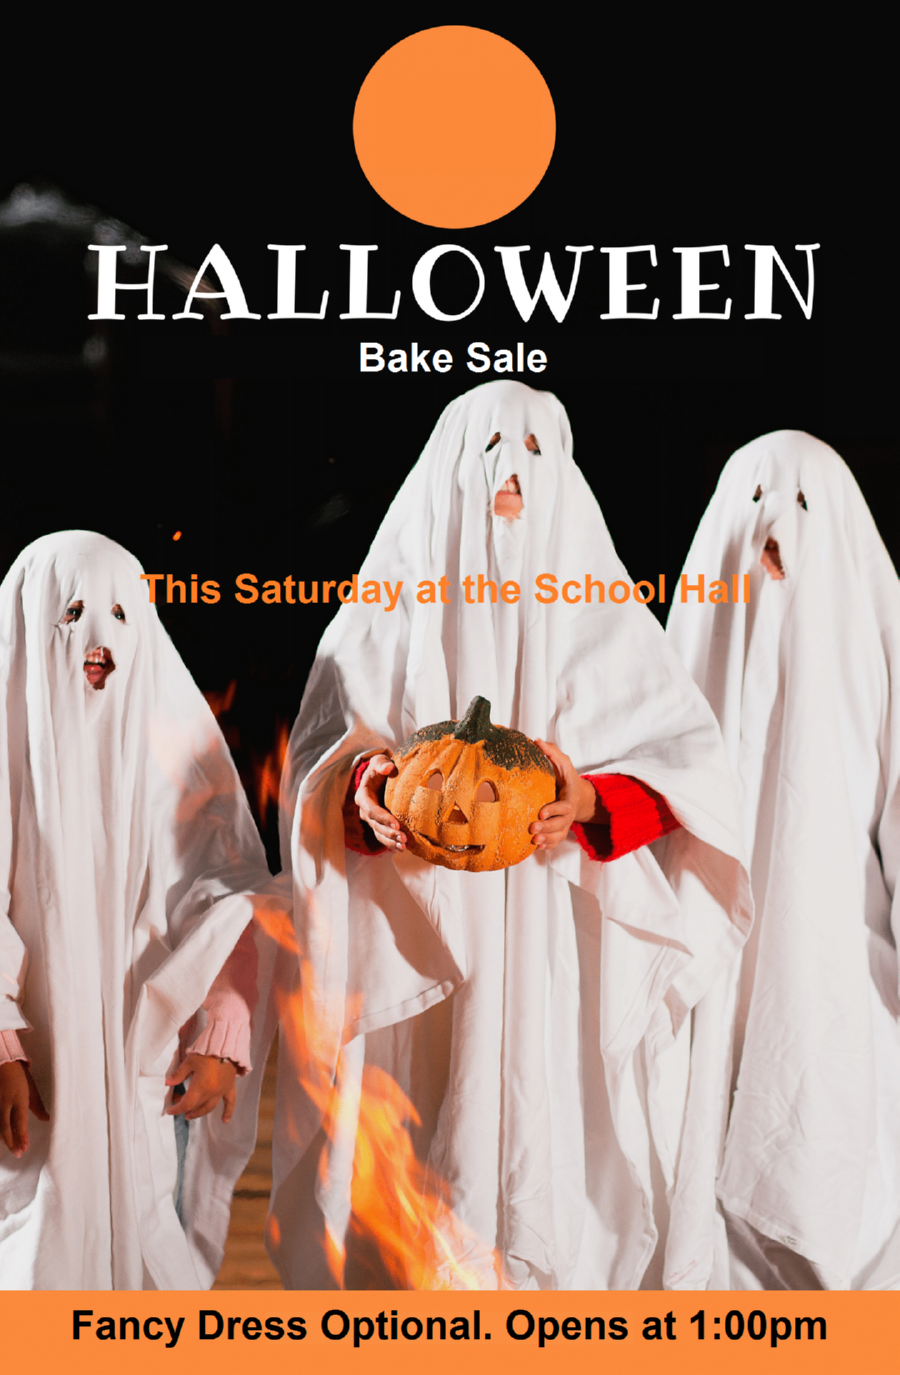 Funny Halloween Bake Sale Posters